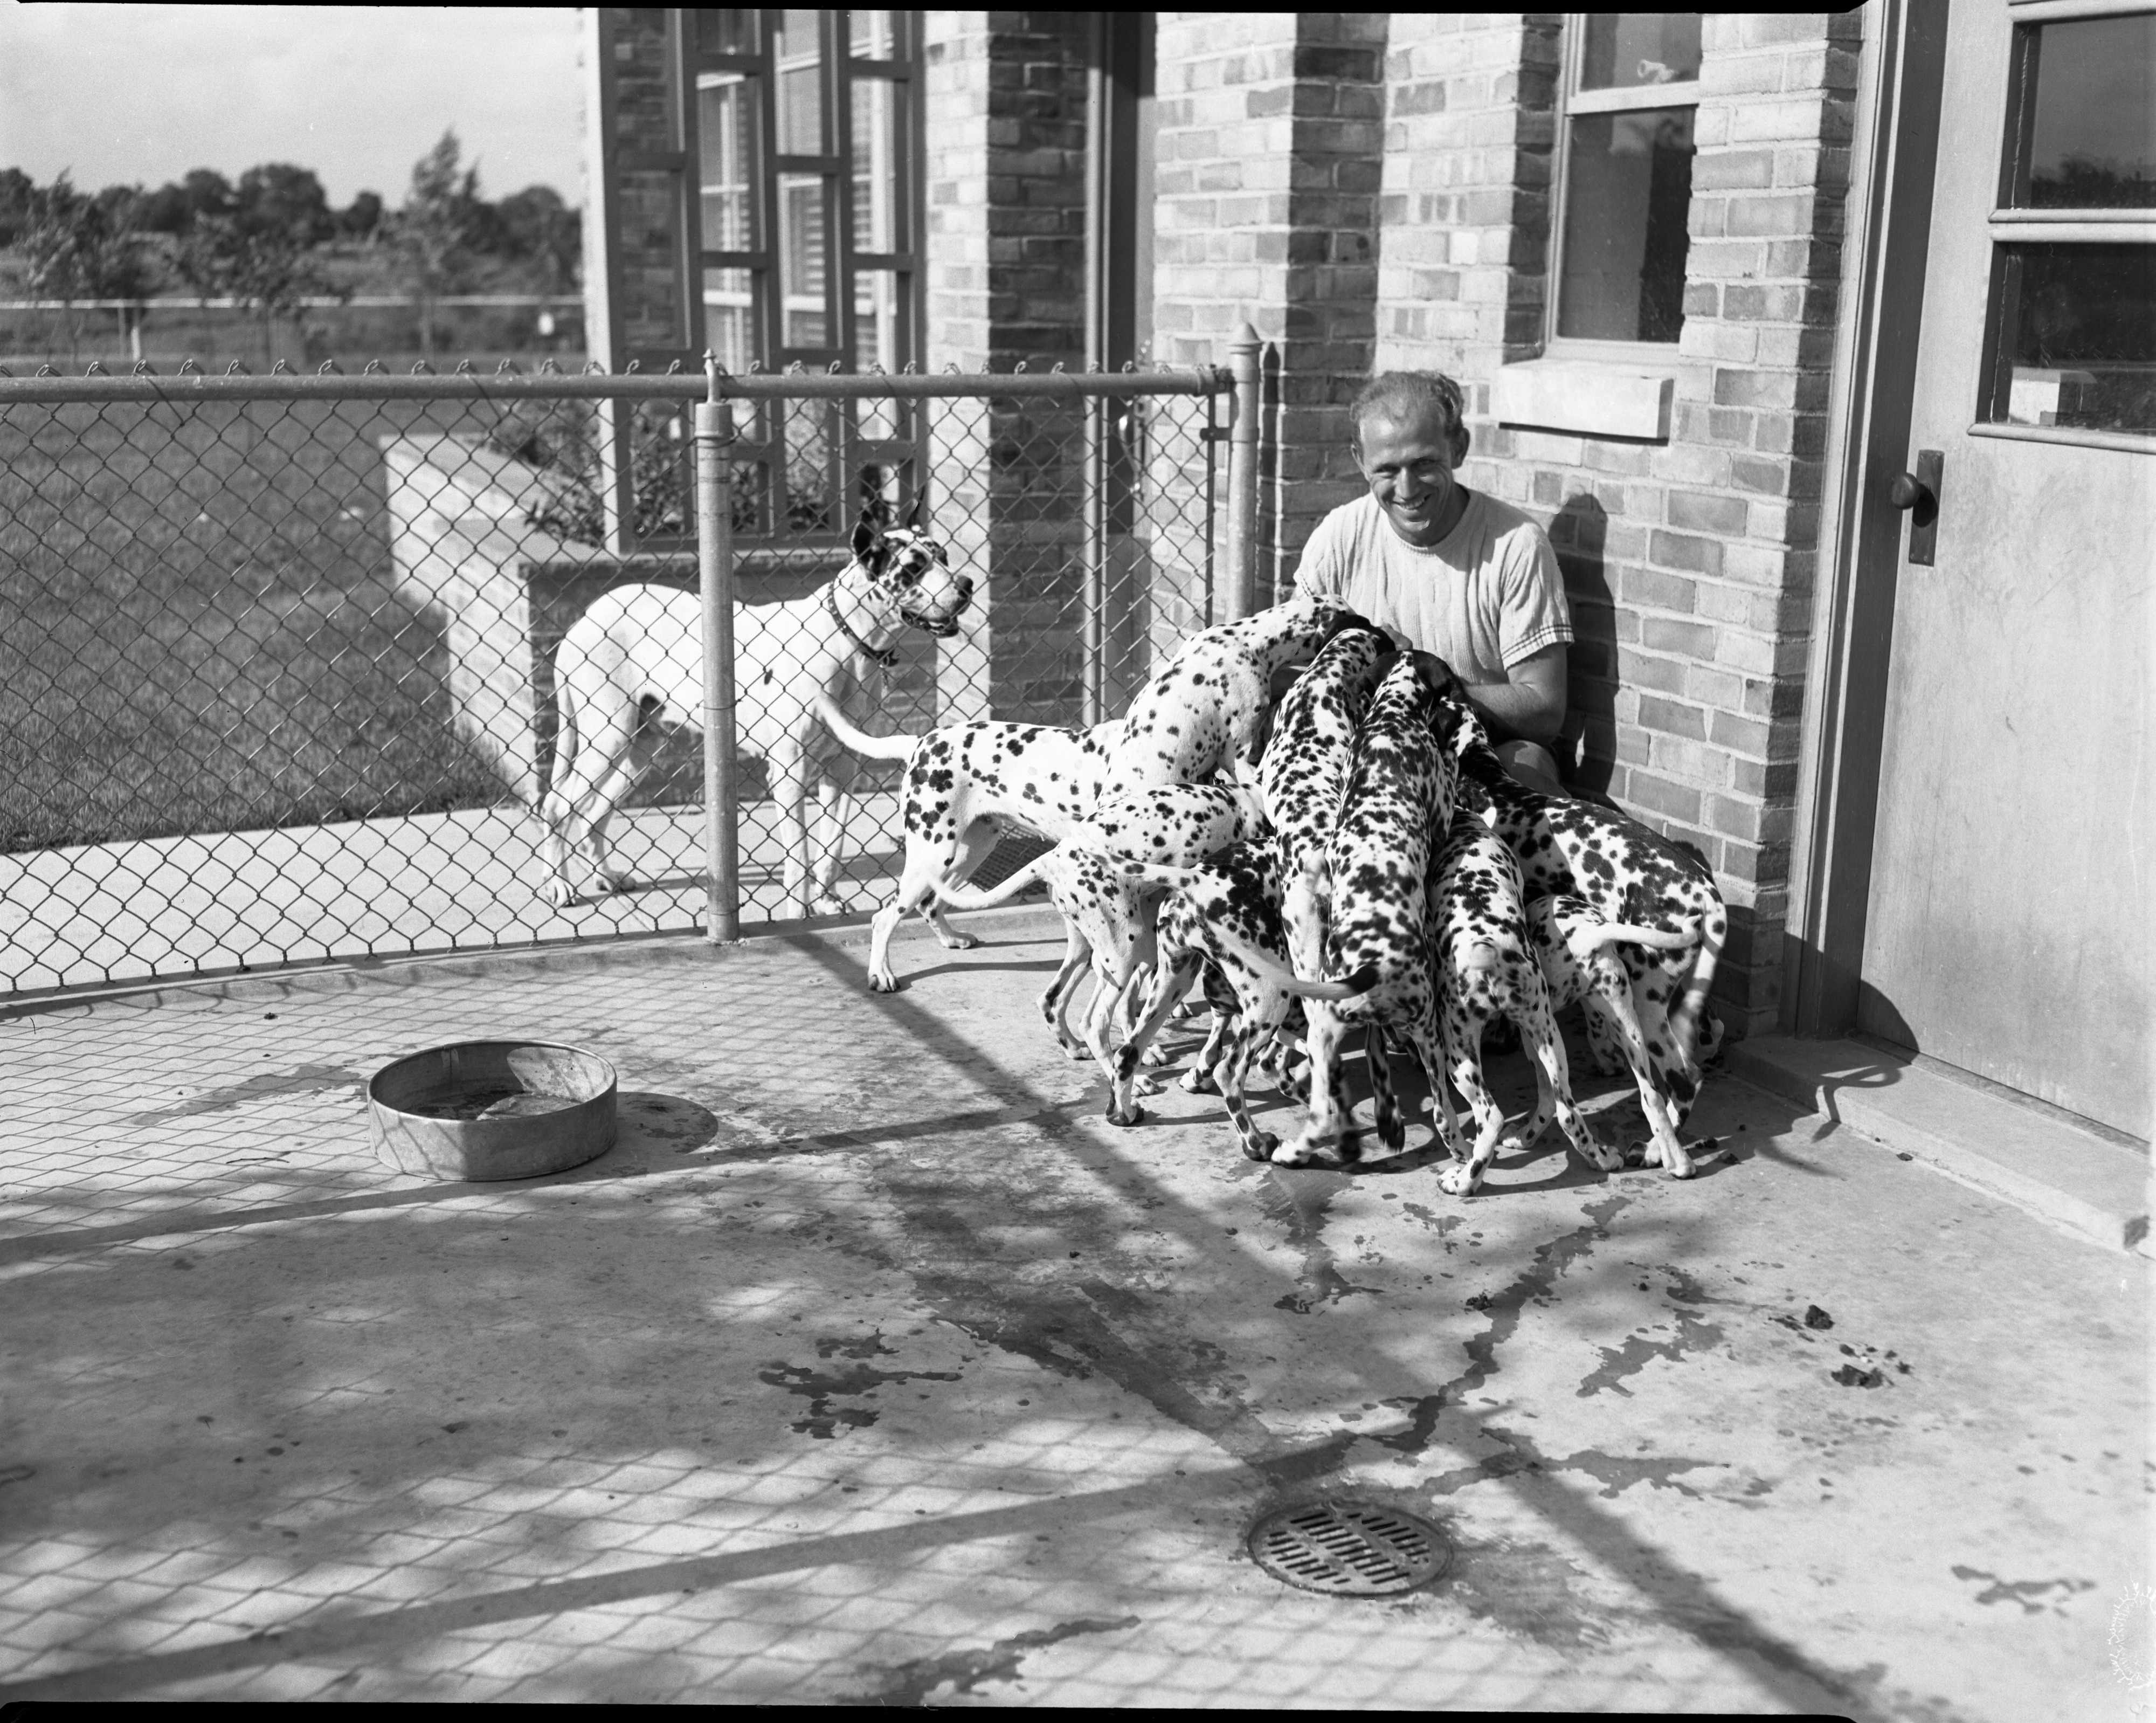 Dalmatians at the Ann Arbor Humane Society, August 1952 image